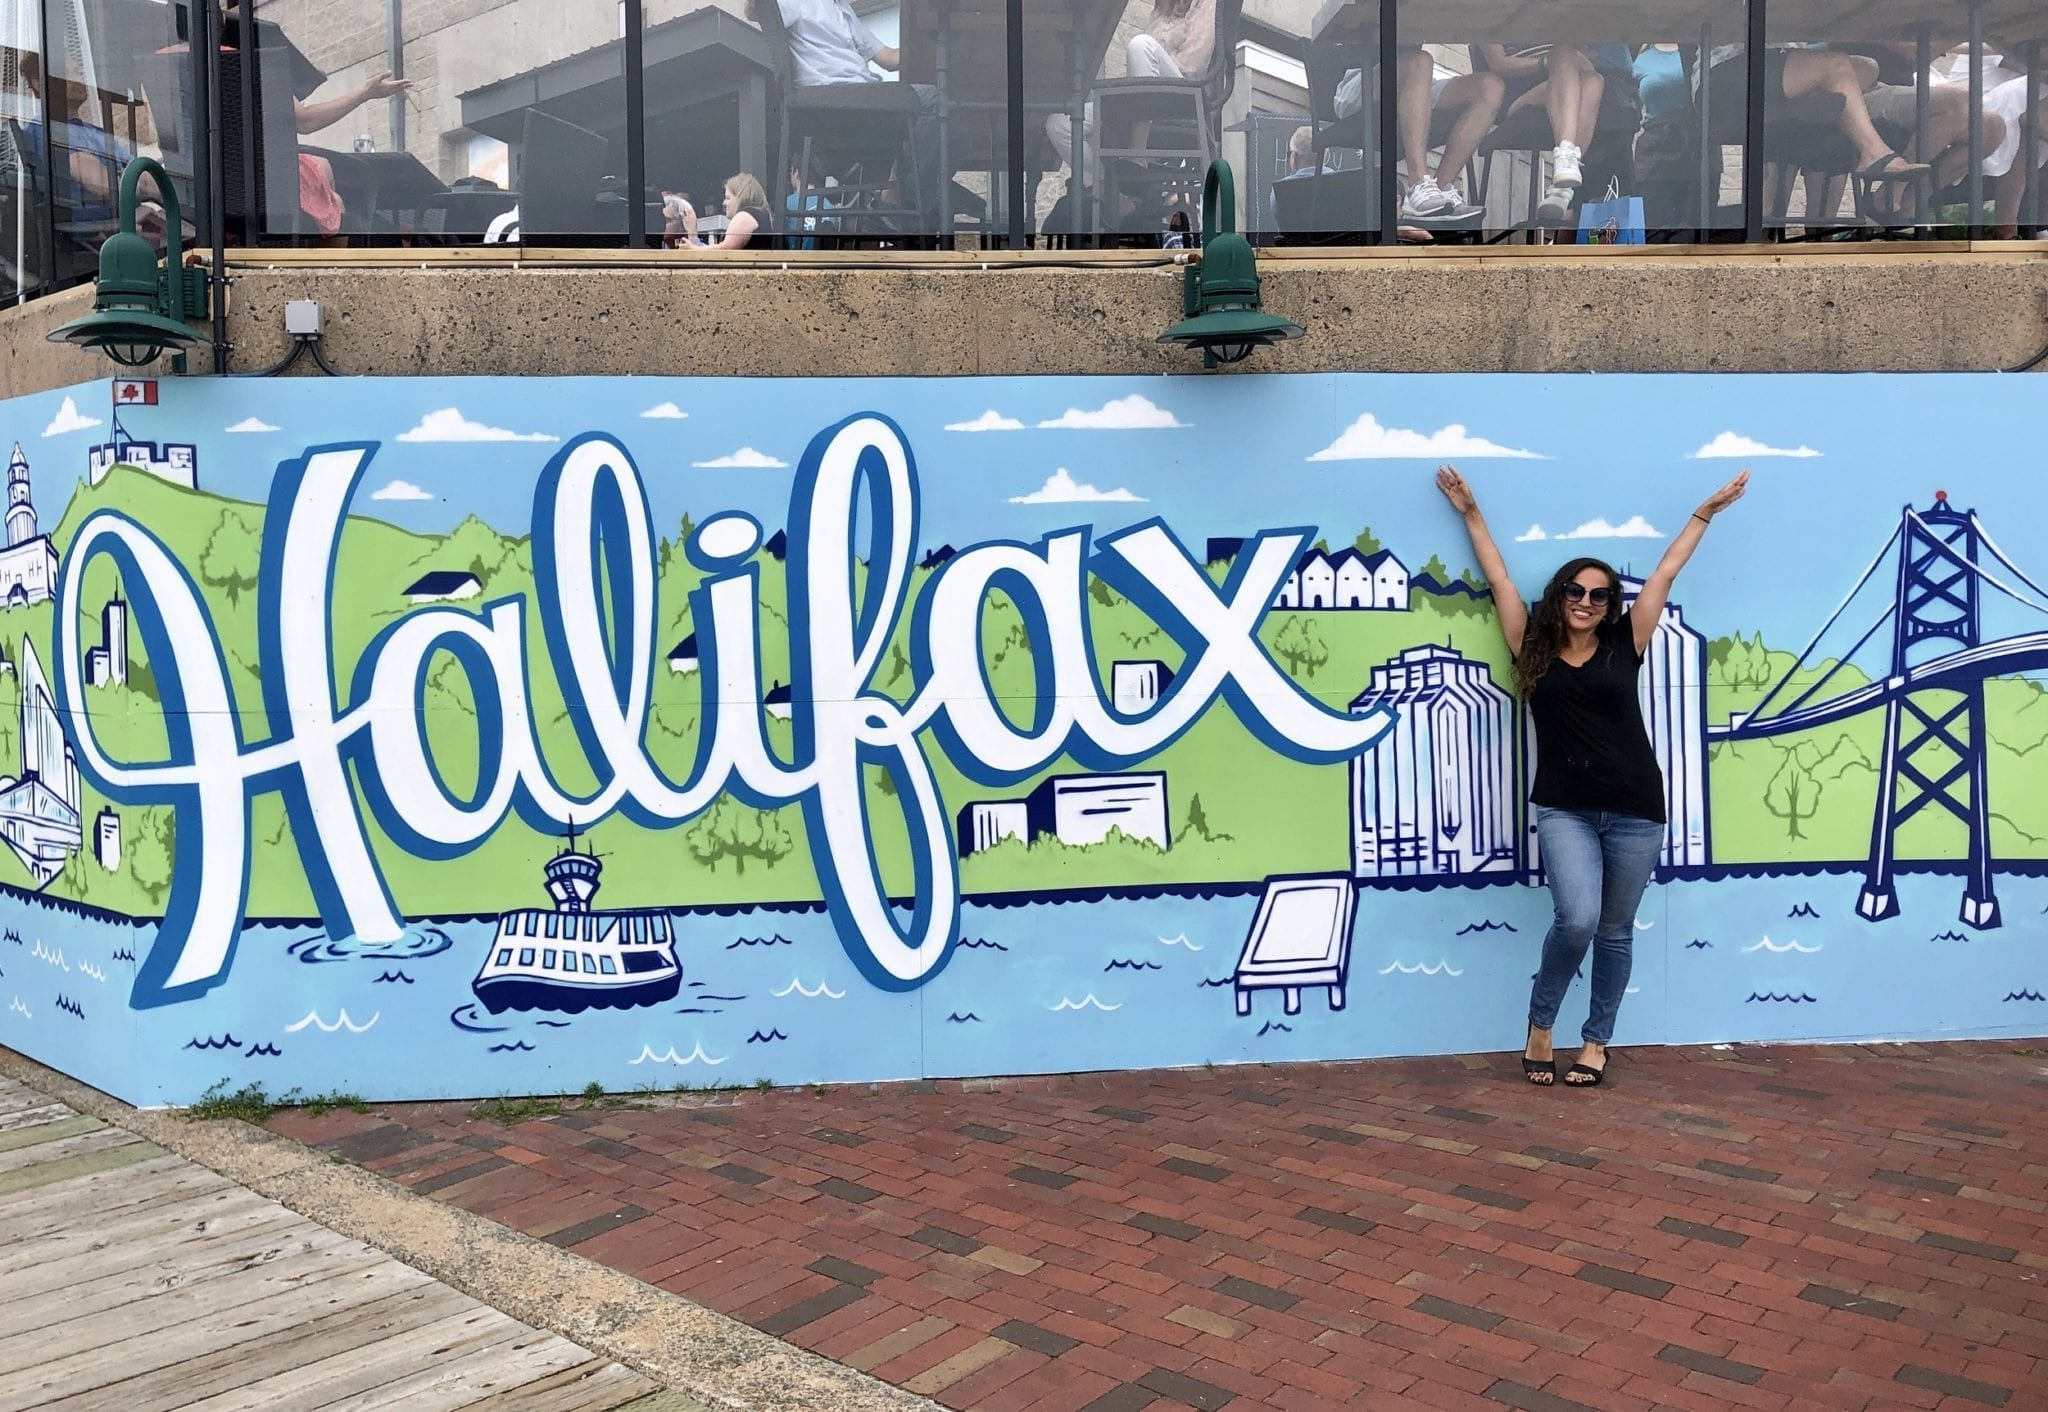 Kate poses with her arms in the air in front of a blue, green and white mural with the word Halifax in front of the Halifax cityscape.